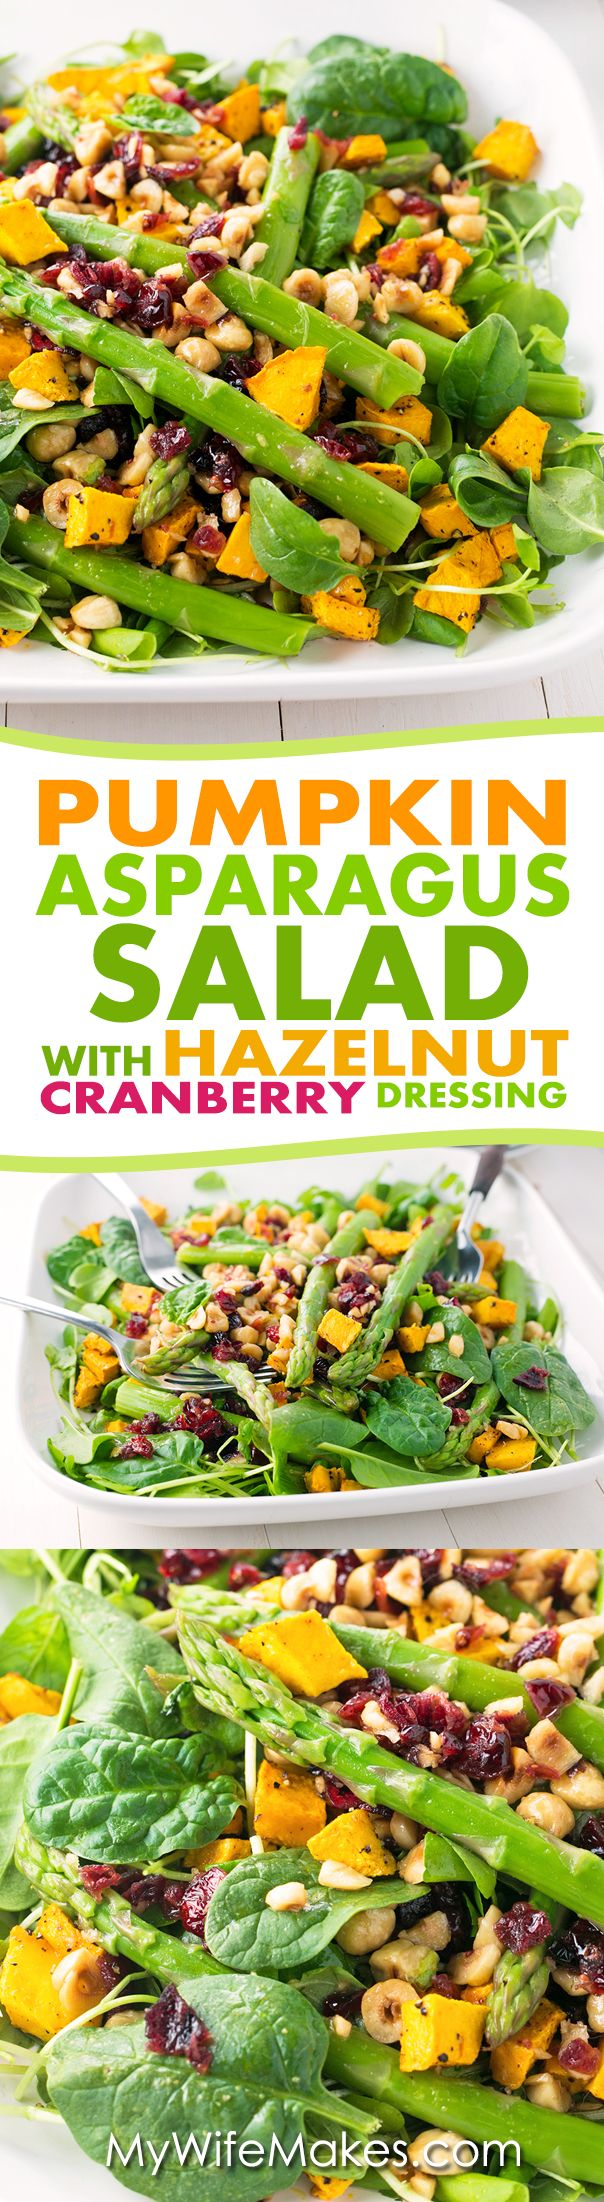 Tangy Pumpkin and Asparagus Salad with Hazelnut Cranberry Dressing.